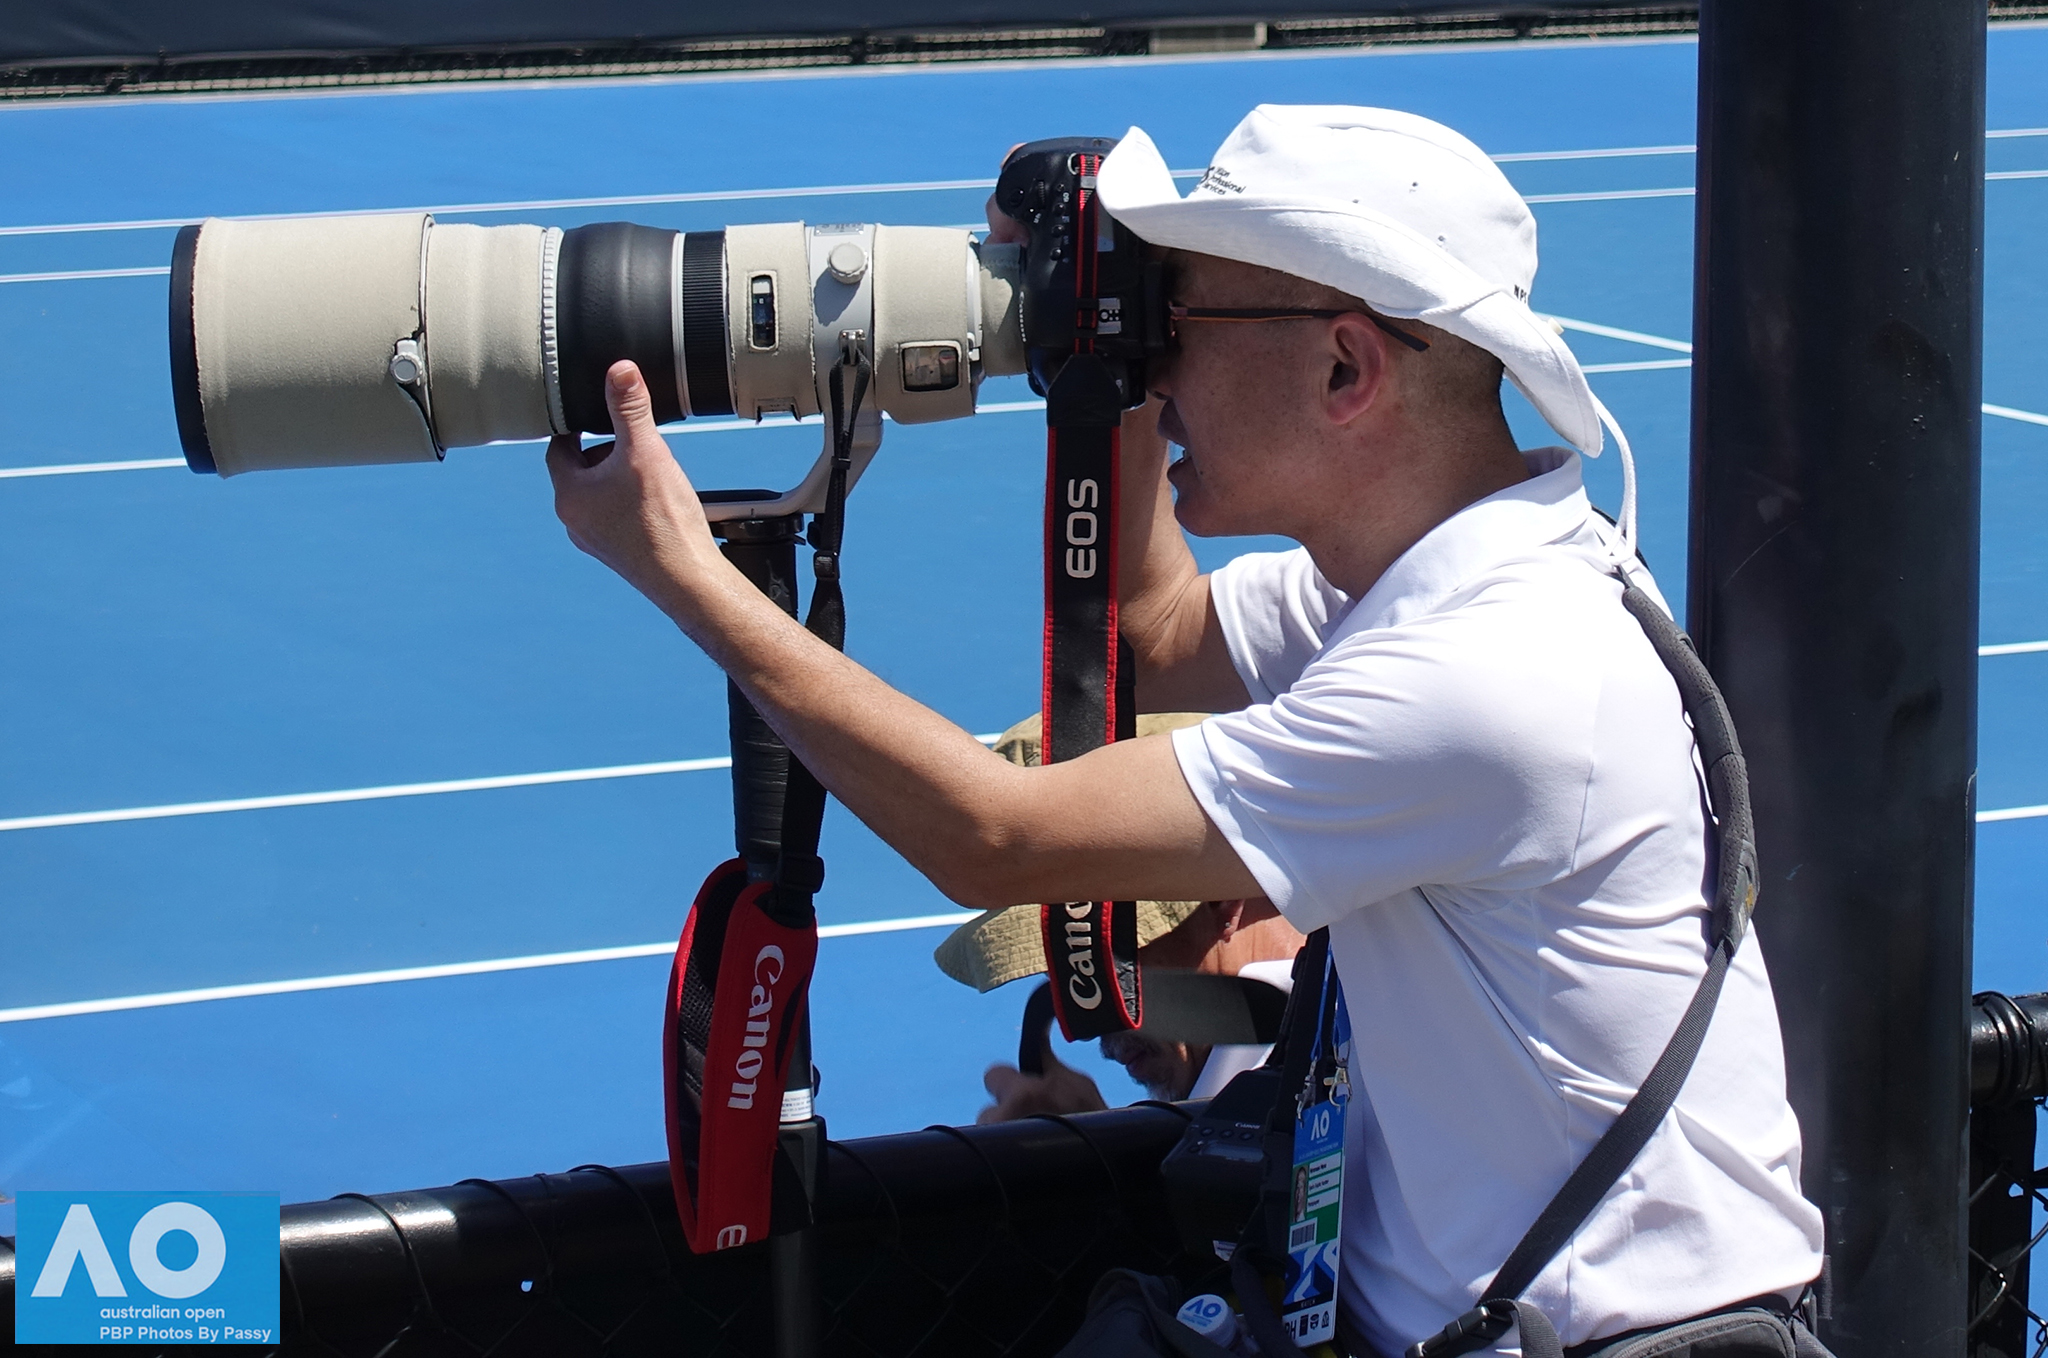 How to do Sports Photography Great Tennis Location